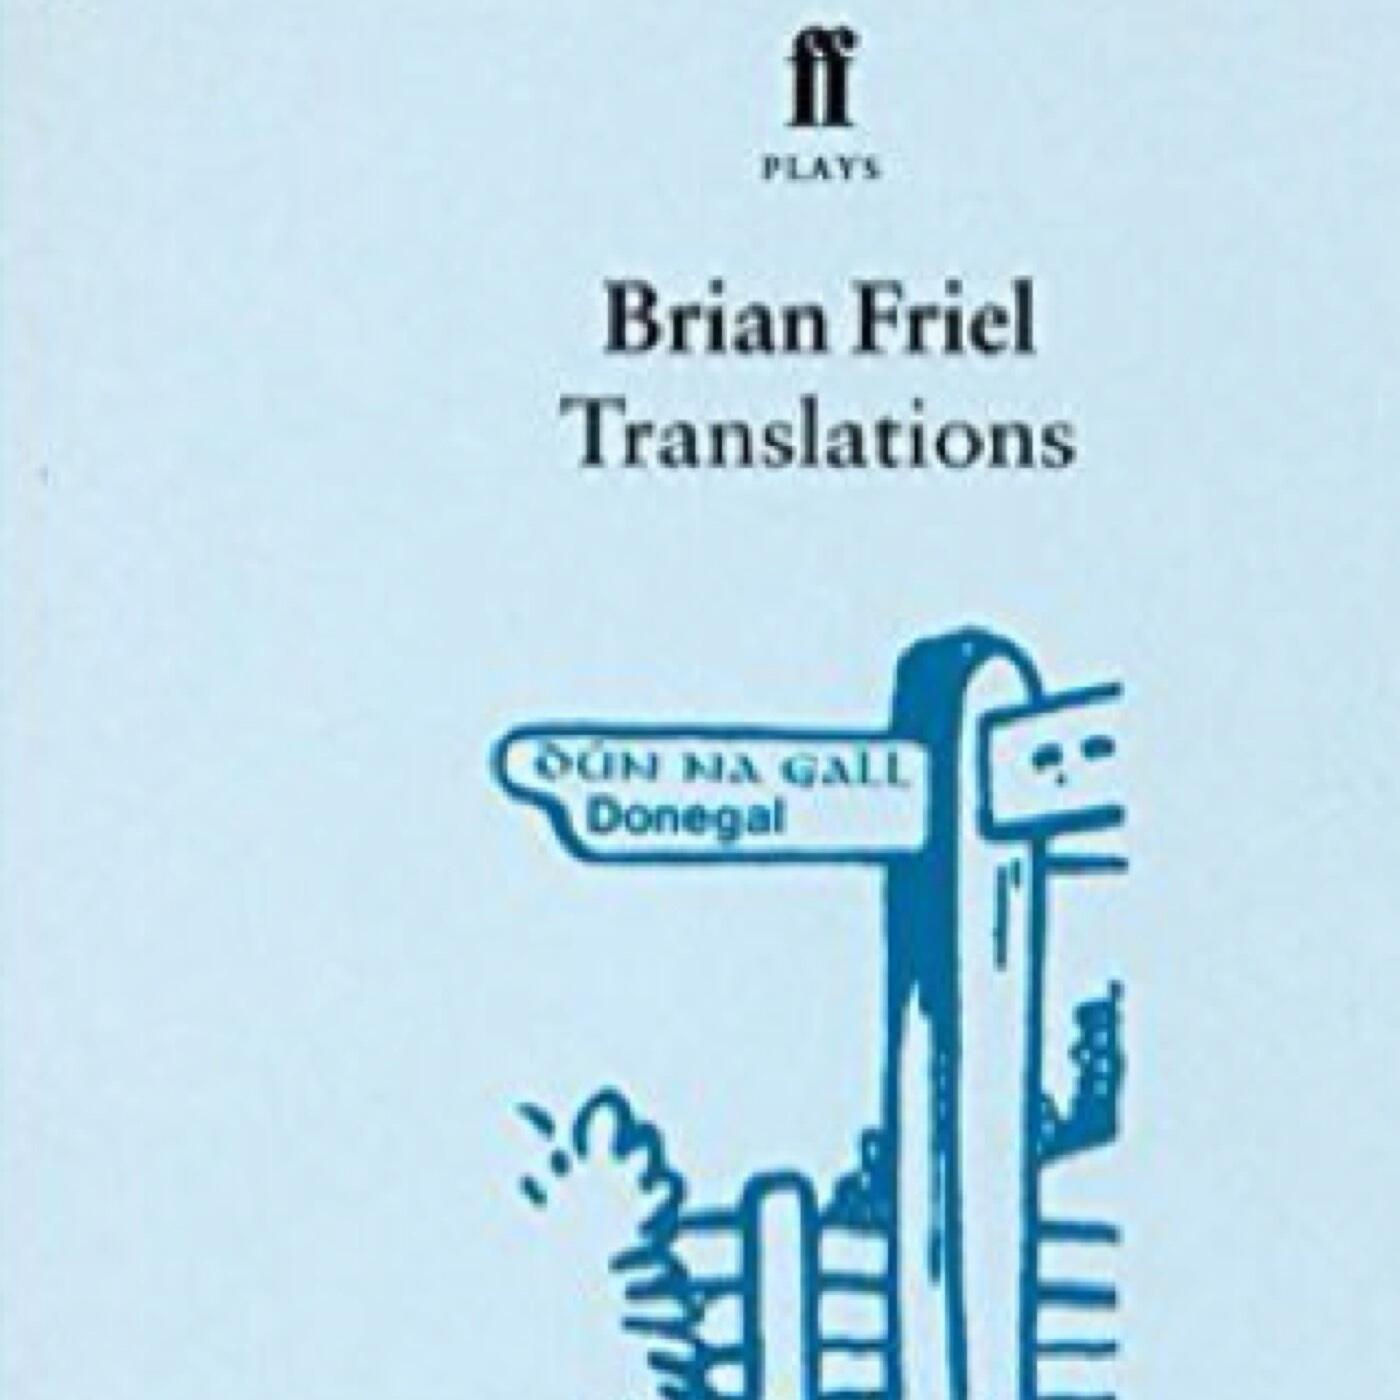 an analysis of culture clash in translations an essay by brian friel 93 translation essay examples from #1 writing service eliteessaywriters get more persuasive, argumentative translation essay samples and other research papers after.